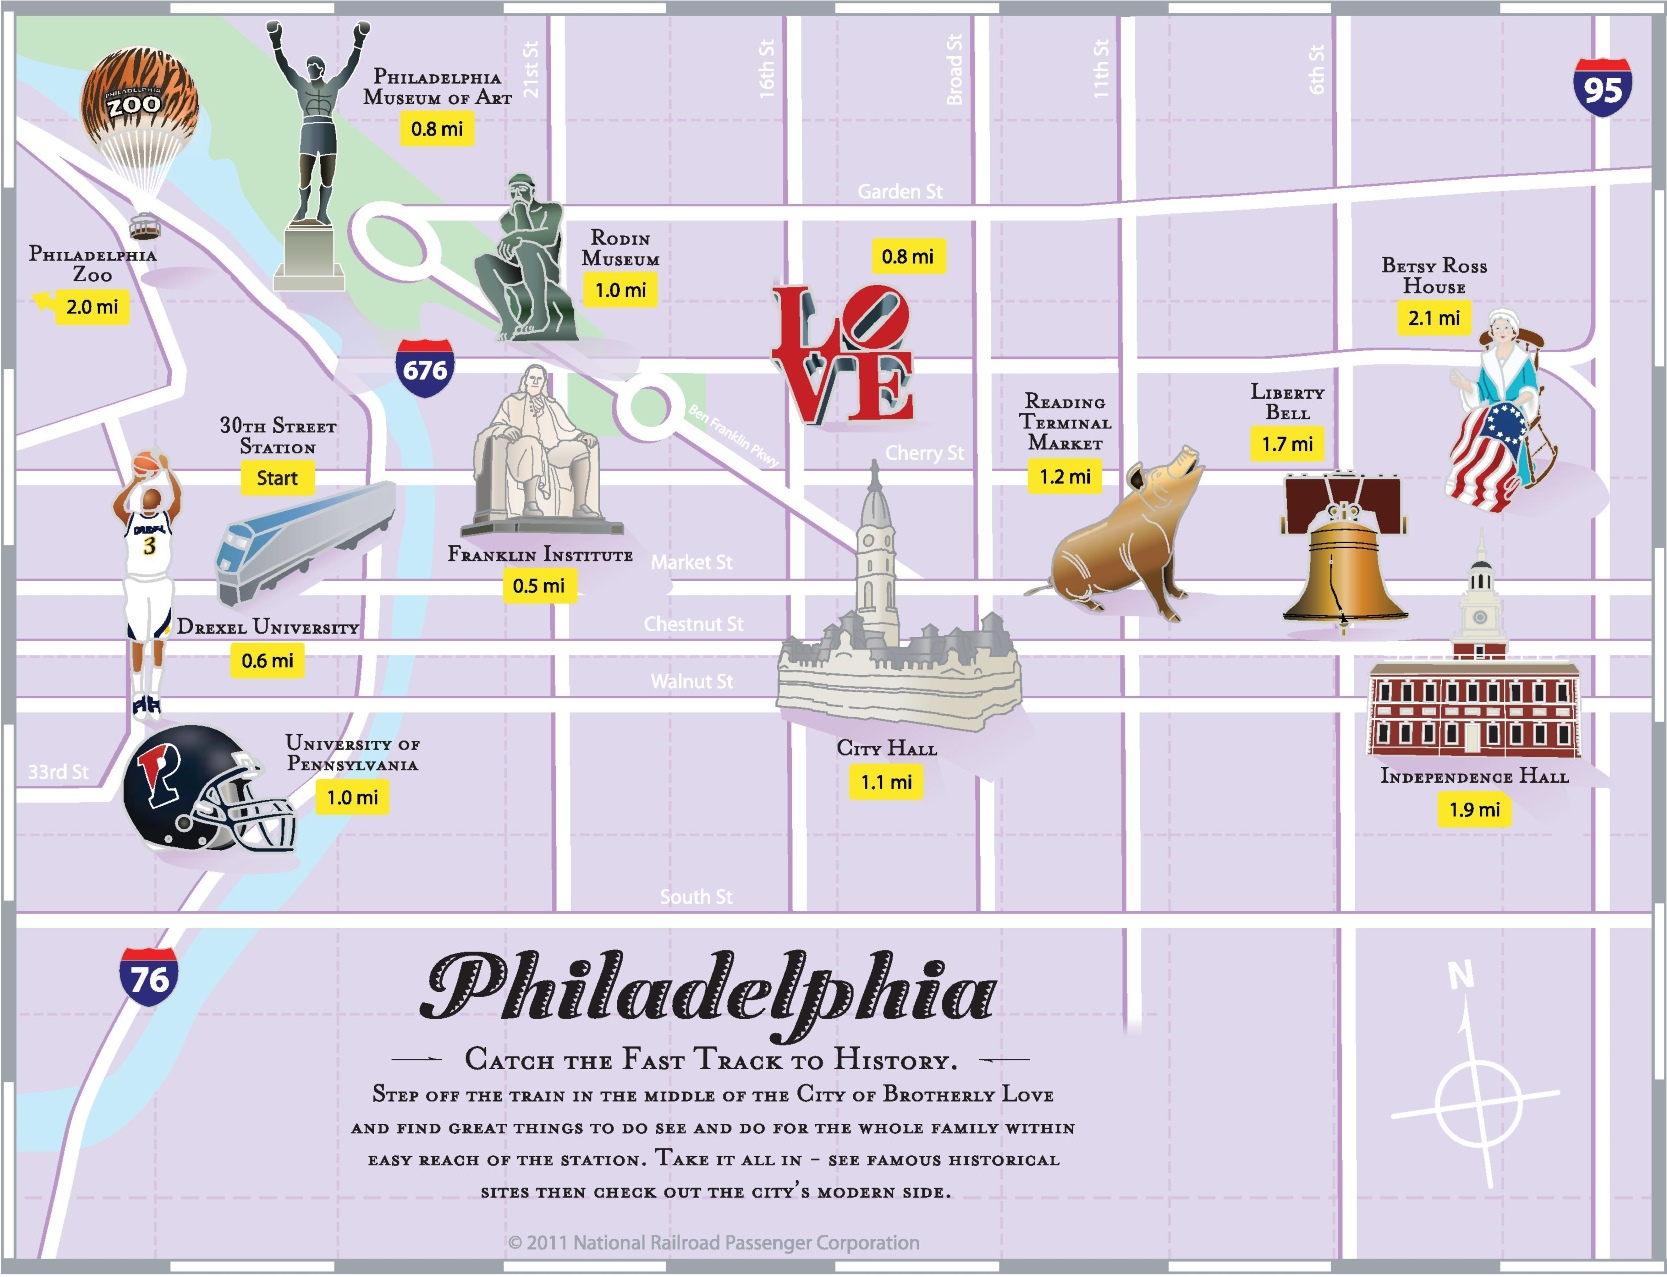 Philadelphia tourist attractions map – Ohio Tourist Attractions Map